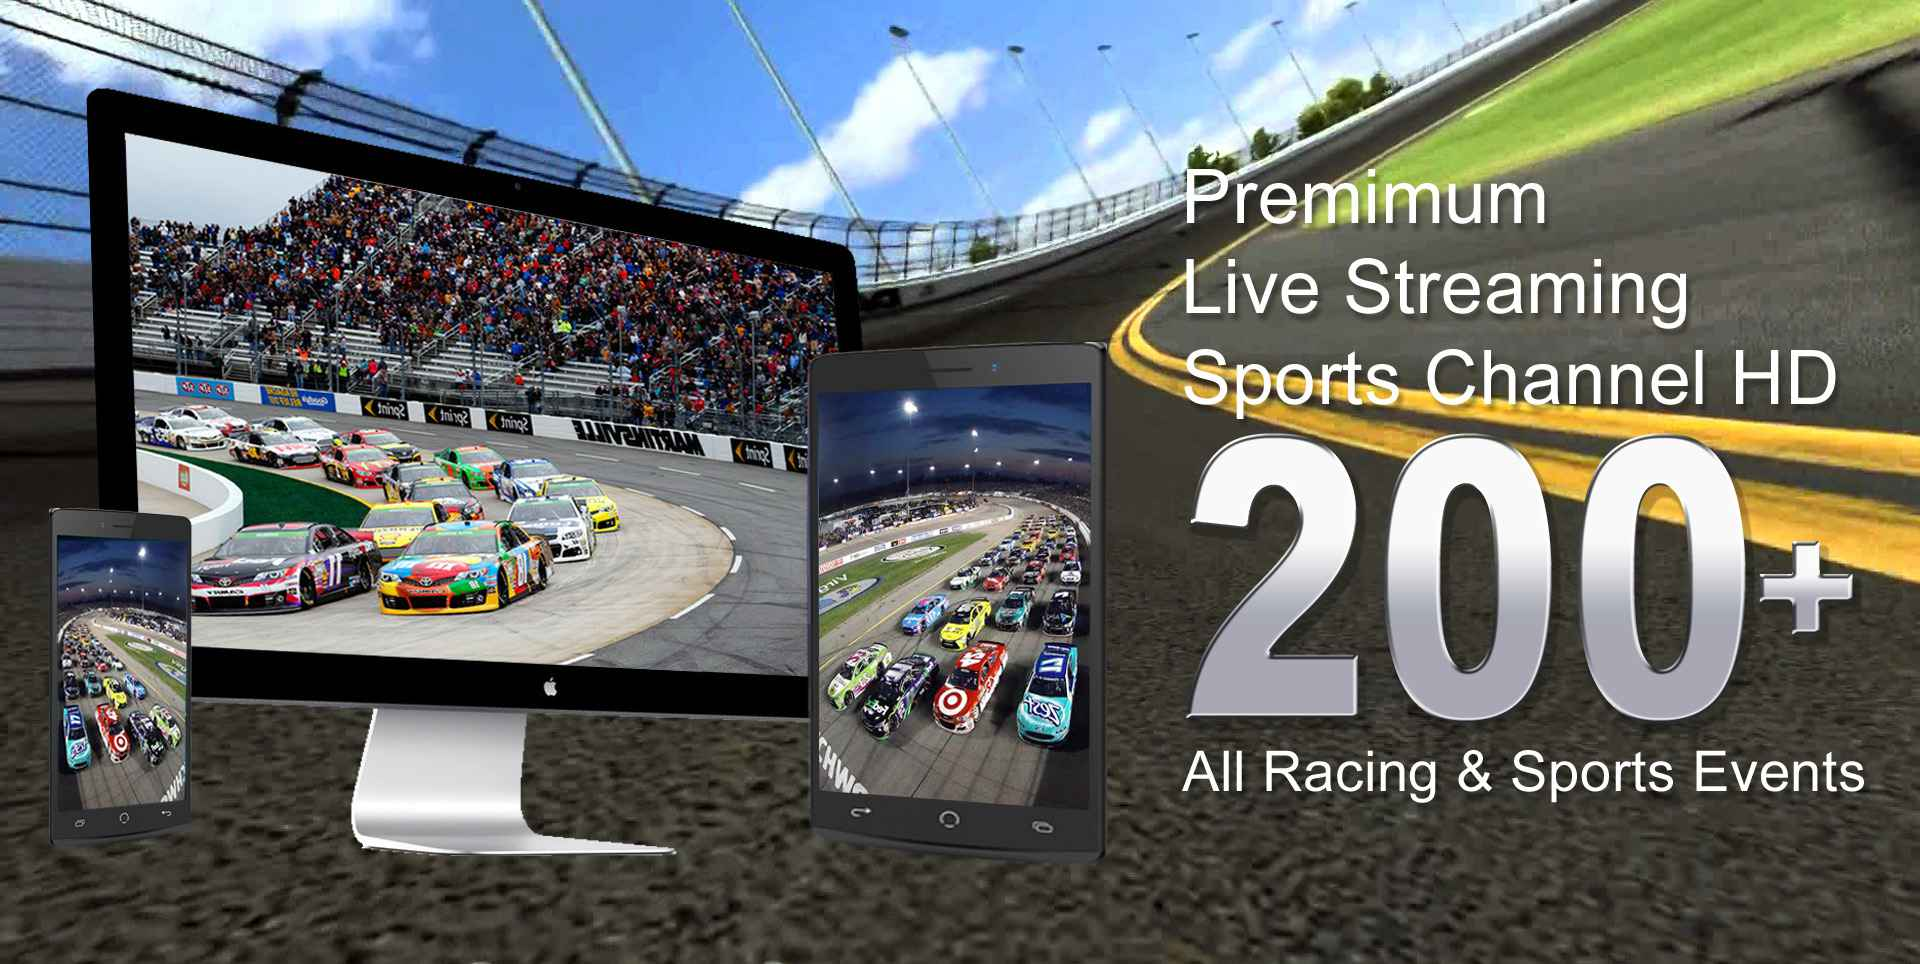 2017-monster-energy-nascar-coca-cola-600-race-results